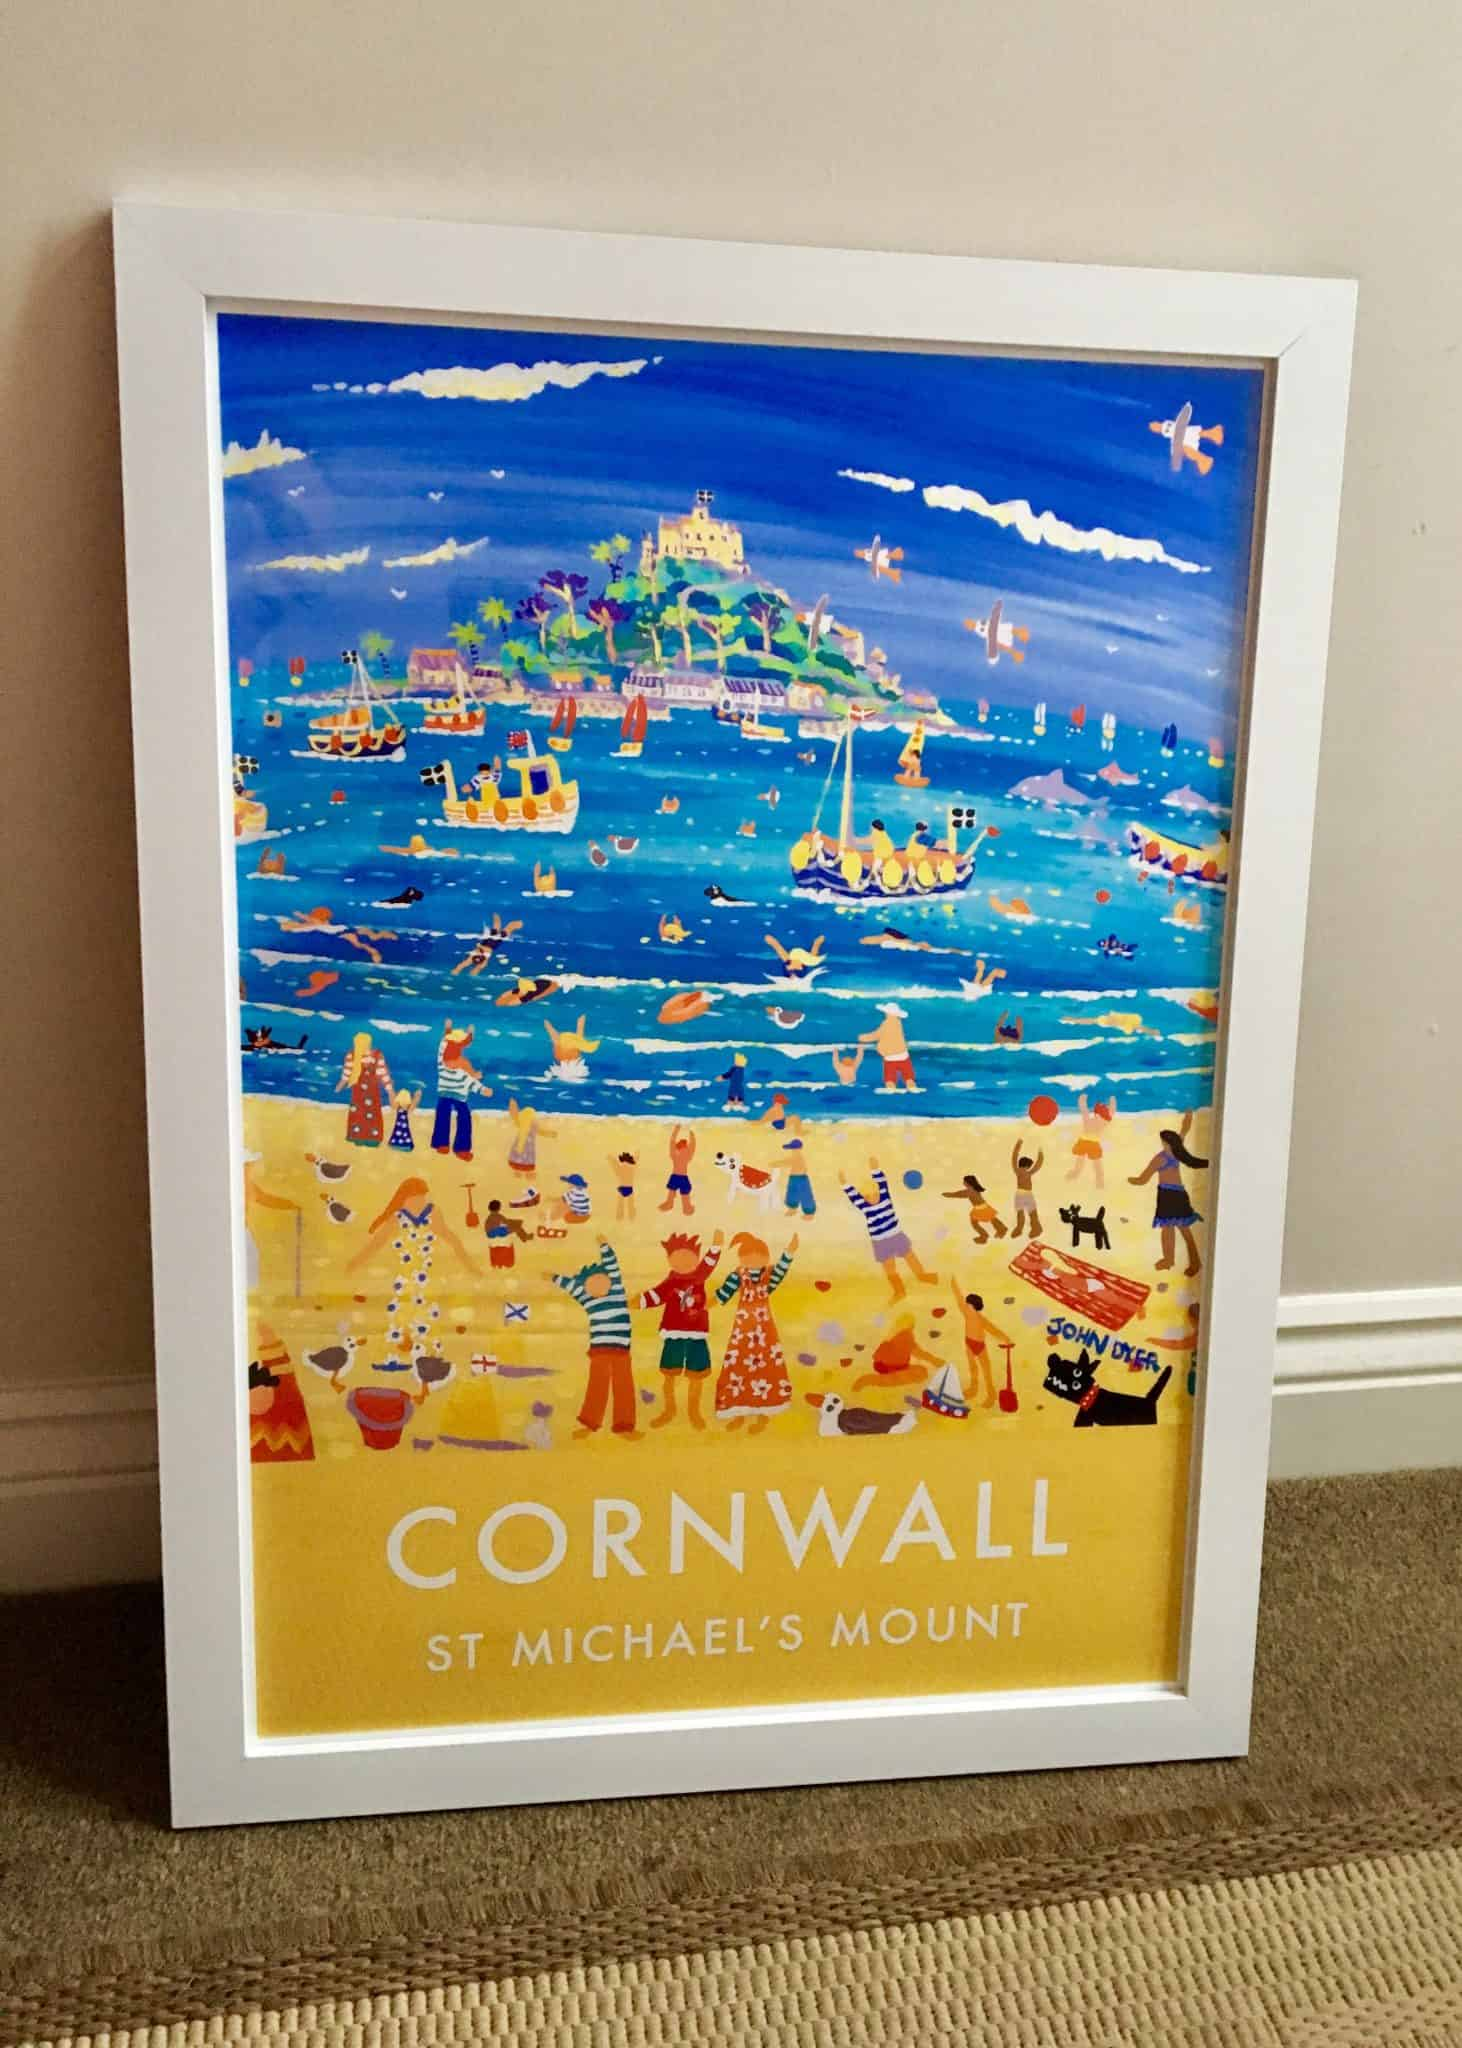 Vintage Style Art Poster - St Michael's Mount, Cornwall